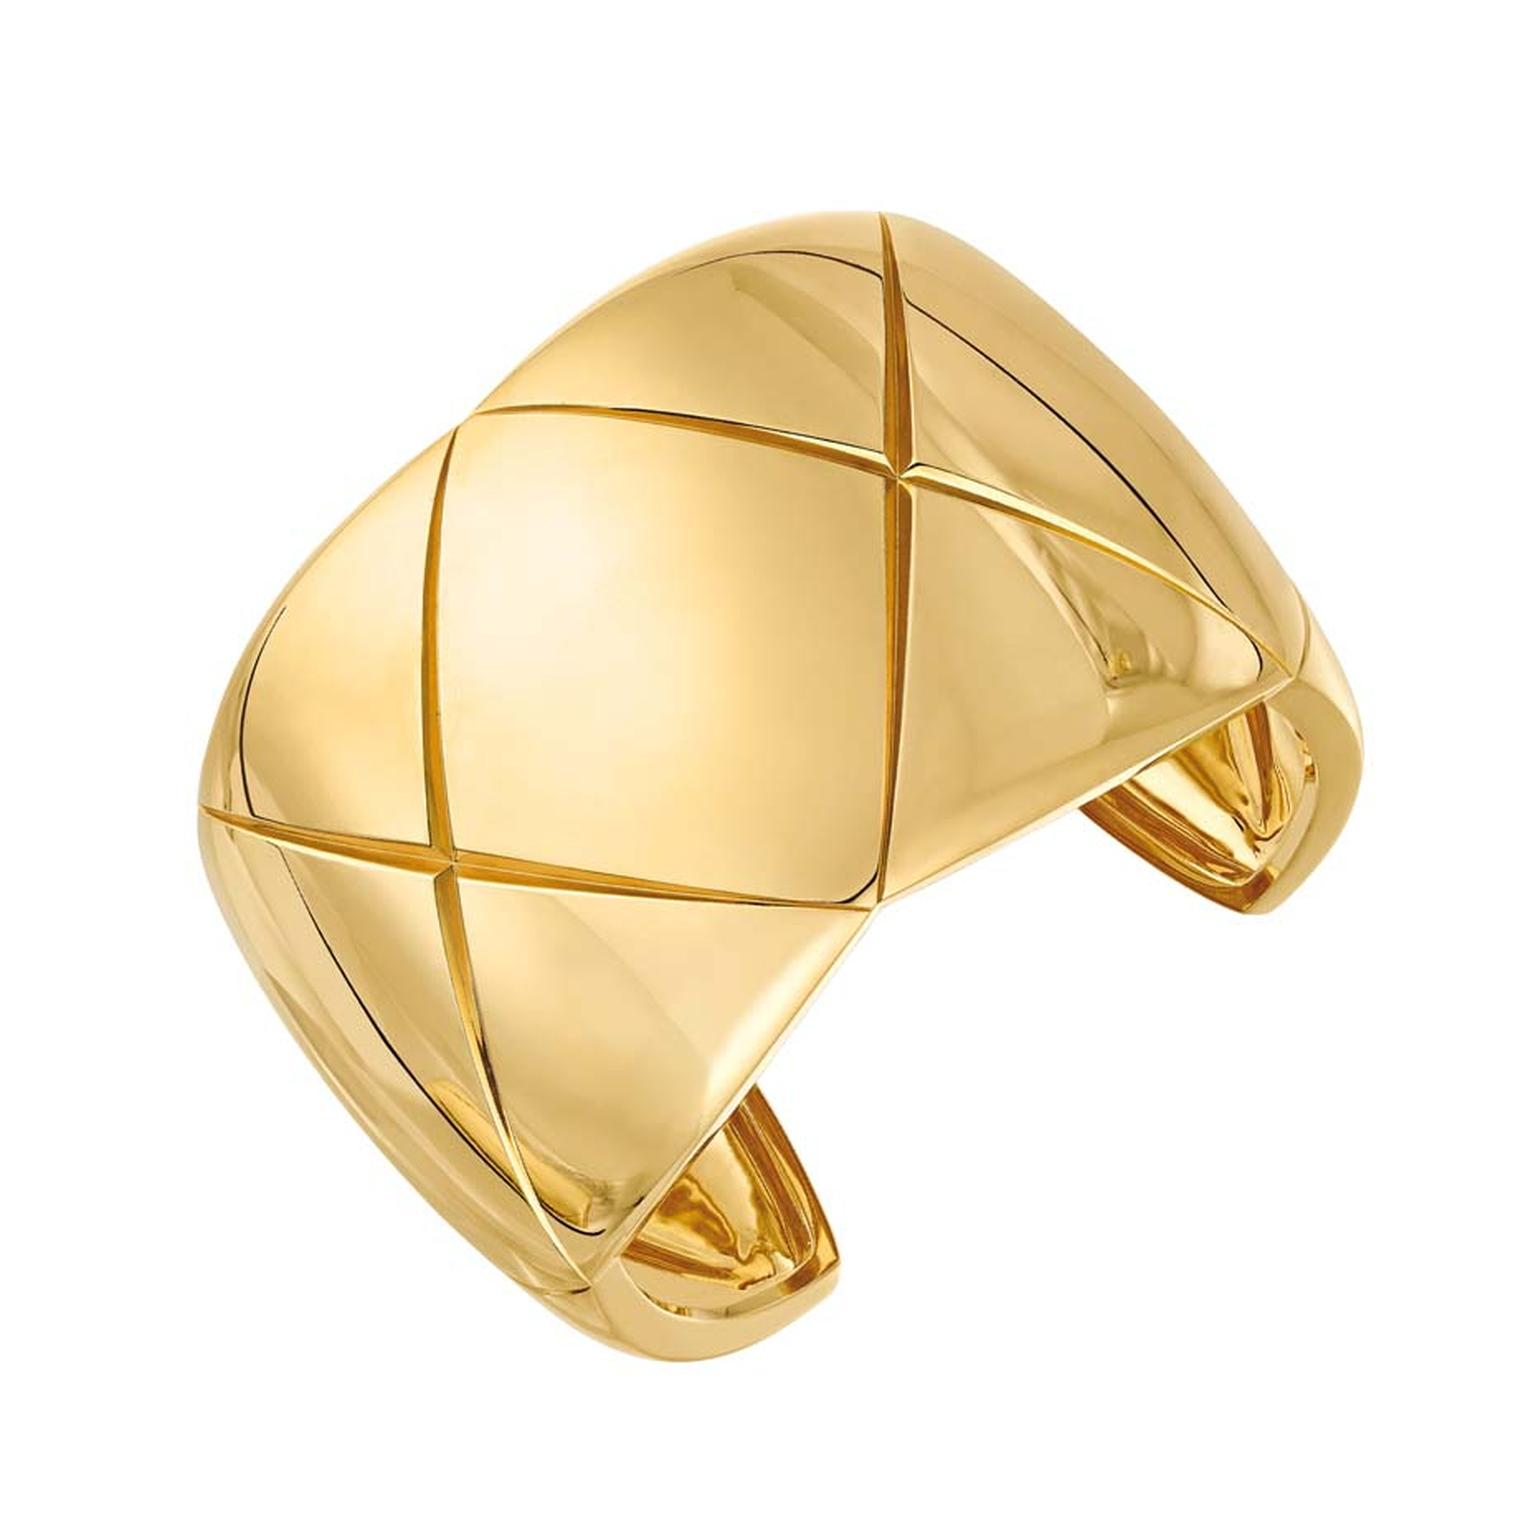 Bold yellow gold cuff from Chanel's new Coco Crush collection.